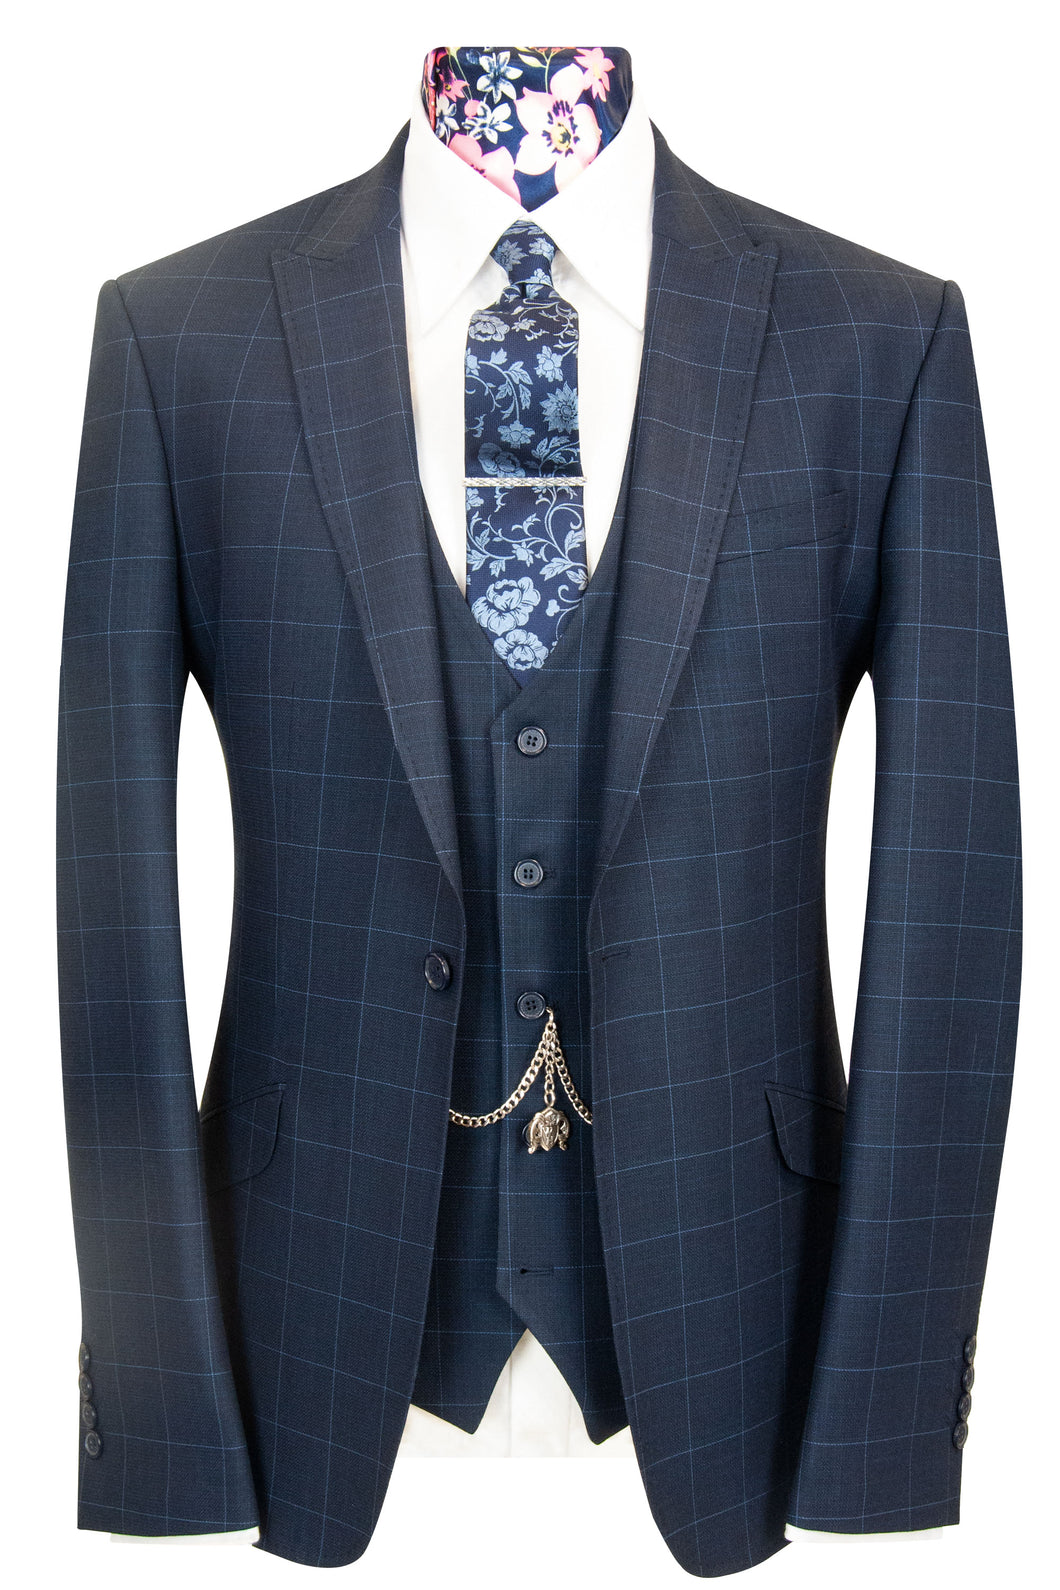 W by William Hunt Navy with Sky Blue Windowpane Check